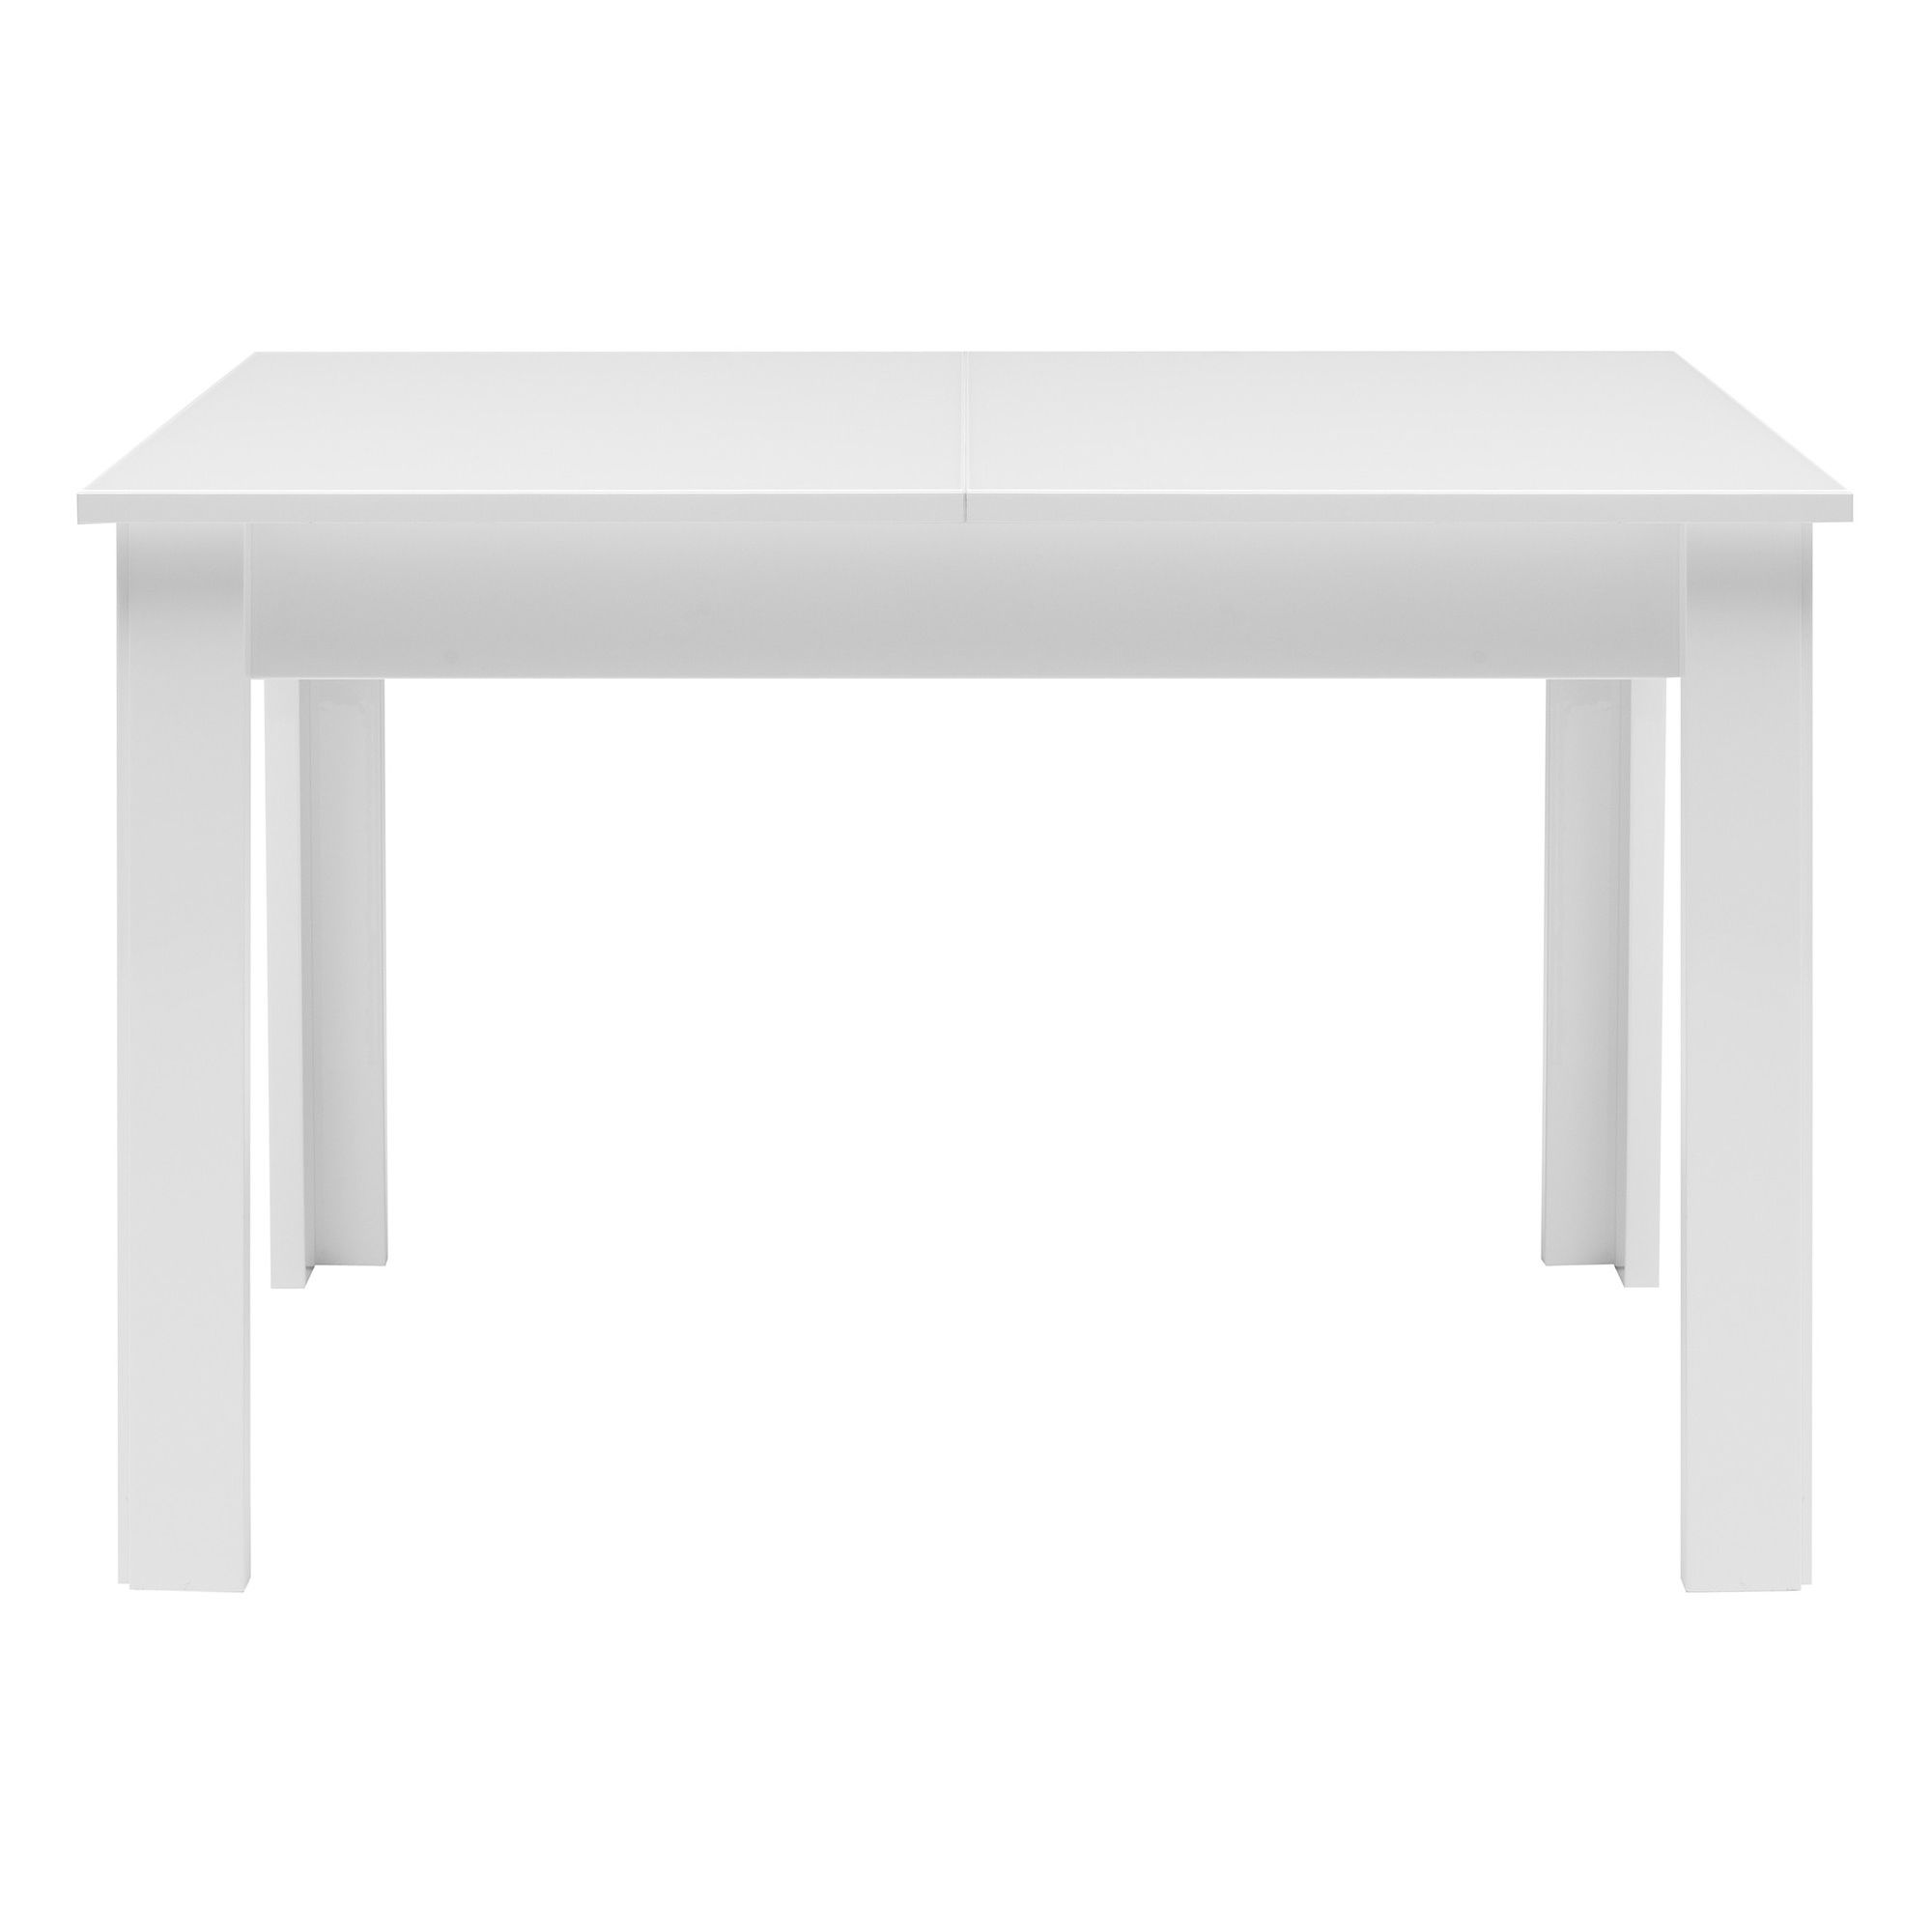 Caxton Manhattan Table with 4 Chairs in White Gloss at Tesco Direct